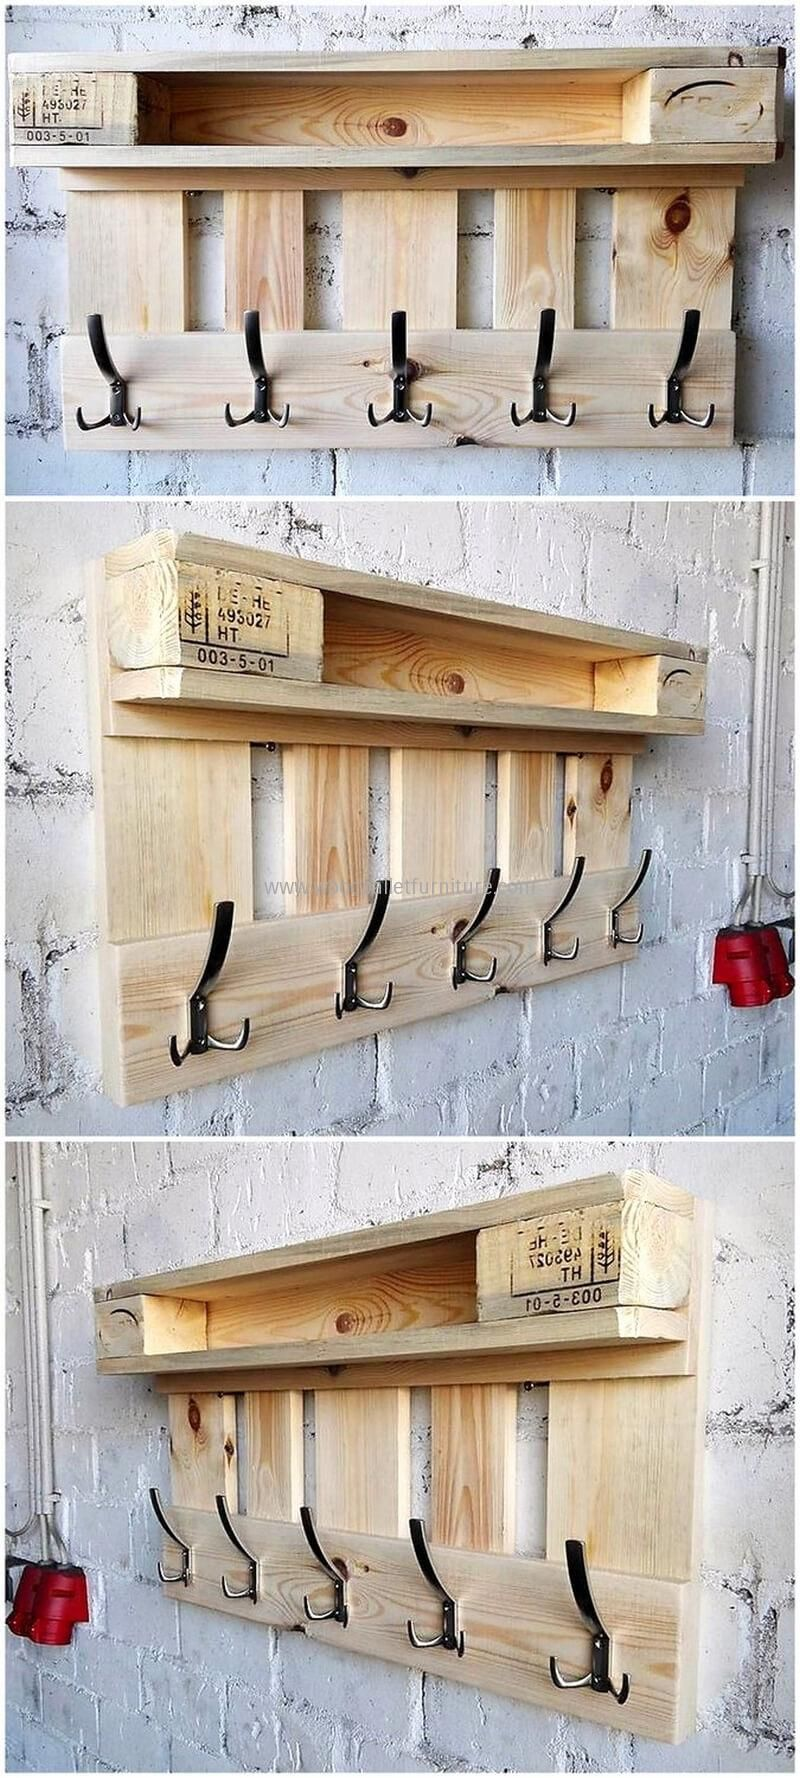 20 Easy Wood Pallet Ideas for Your Home | Palets, Perchero y Madera